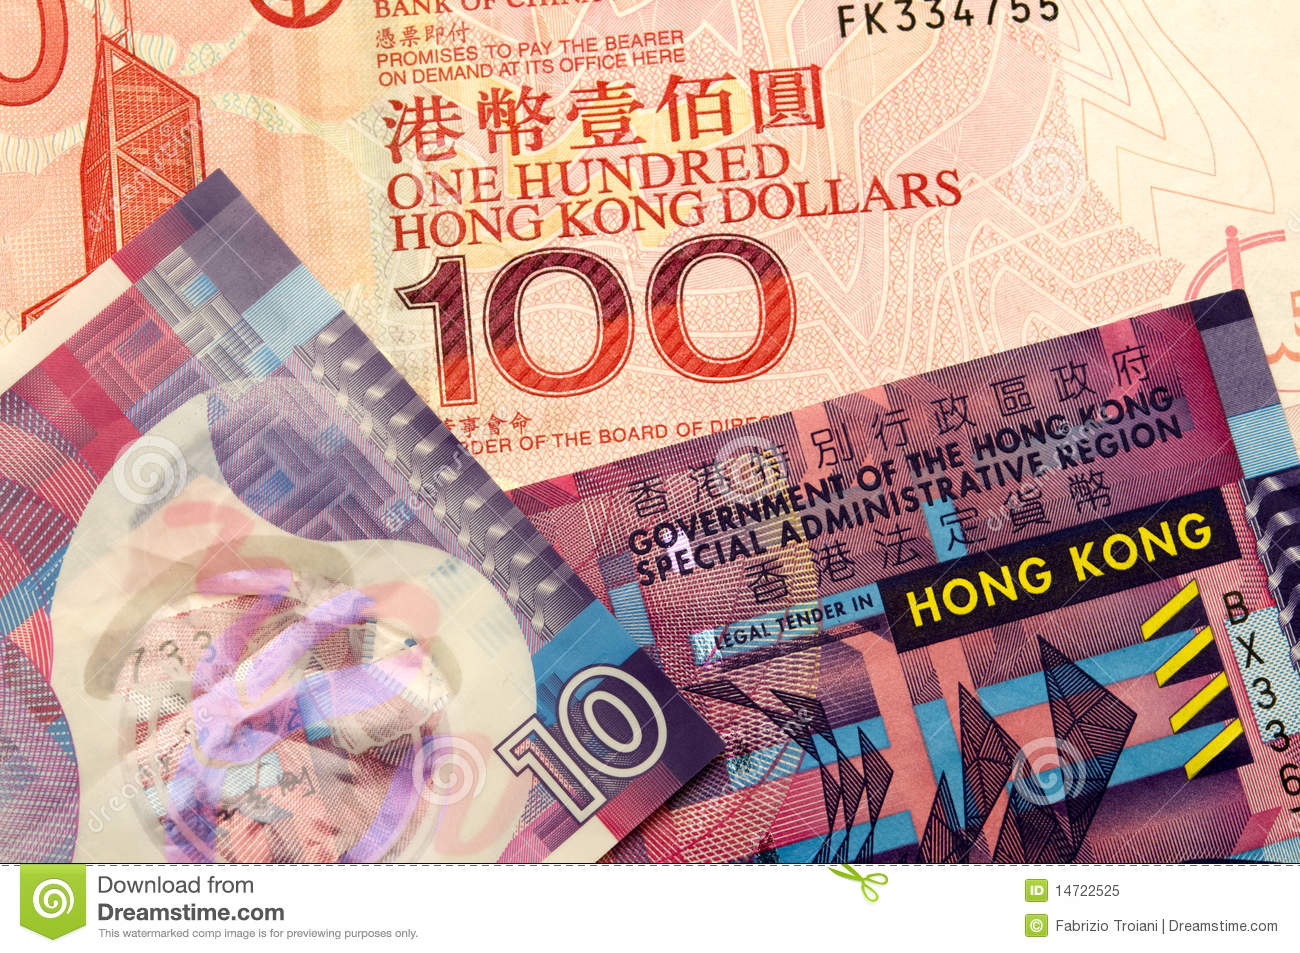 Hong kong bank forex